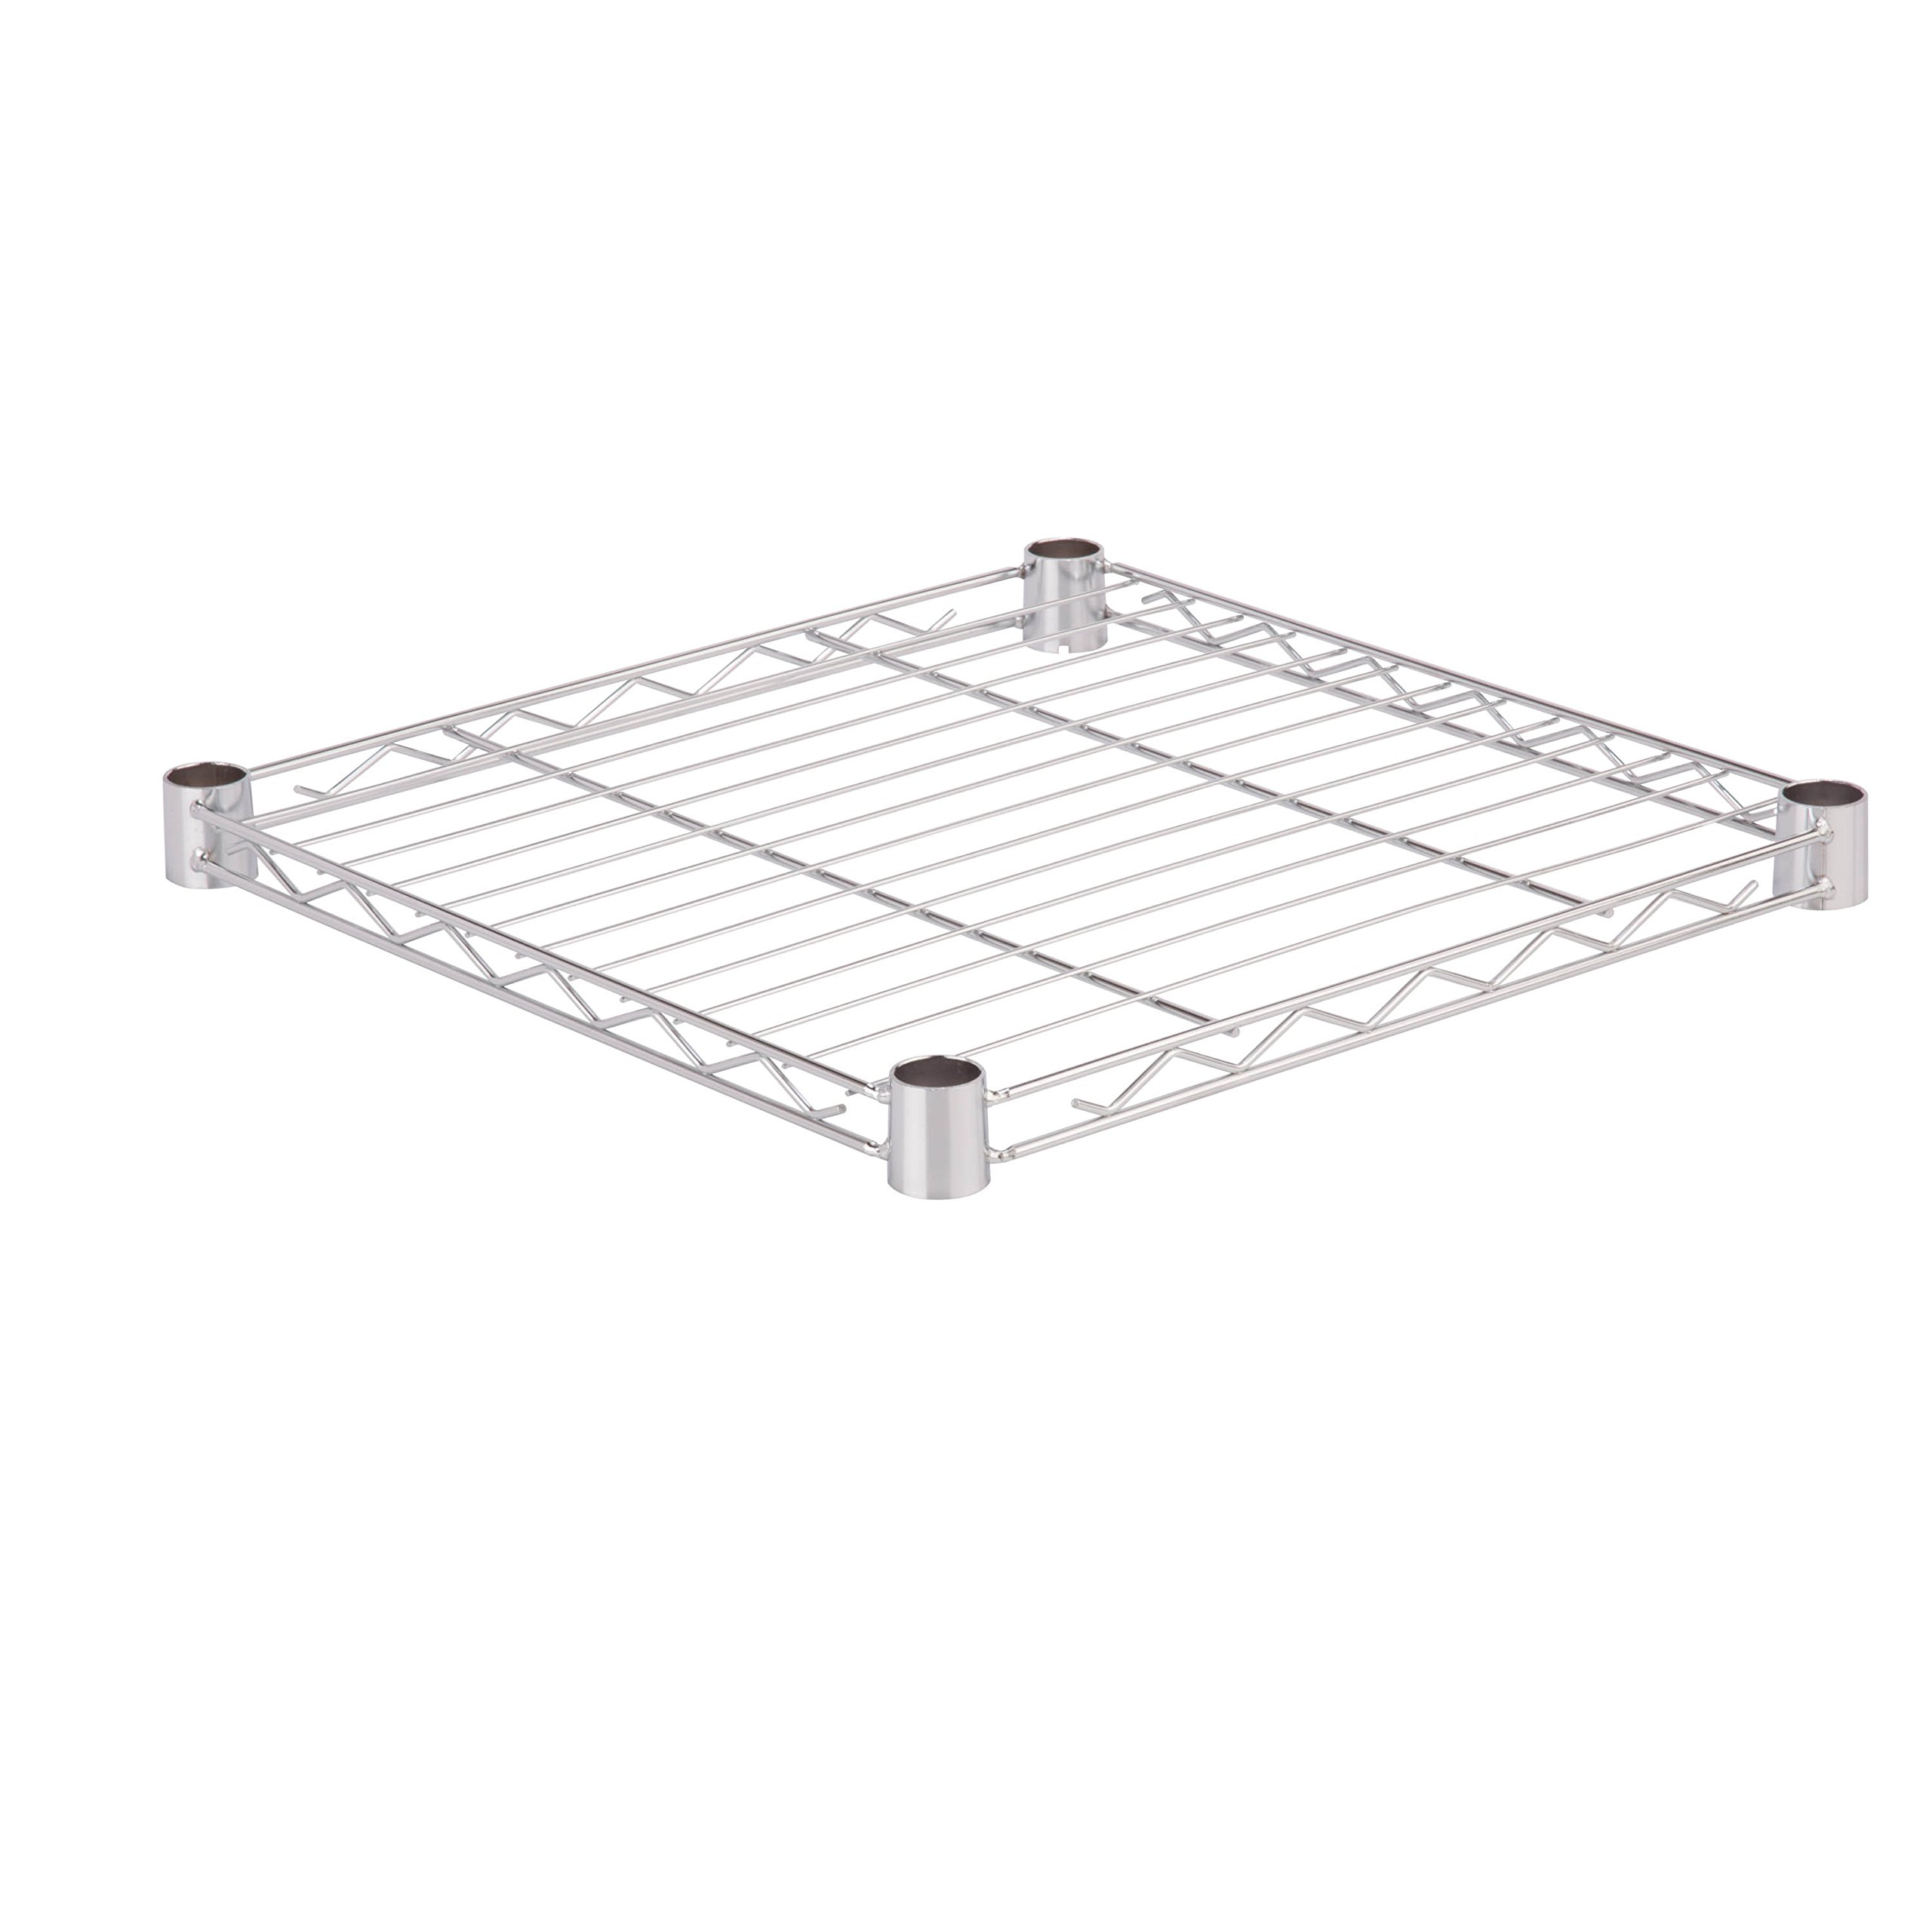 Honey-Can-Do SHF350C1818 Steel Wire Shelf for Urban Shelving Units, 350lbs Capacity, Chrome, 18Lx18W